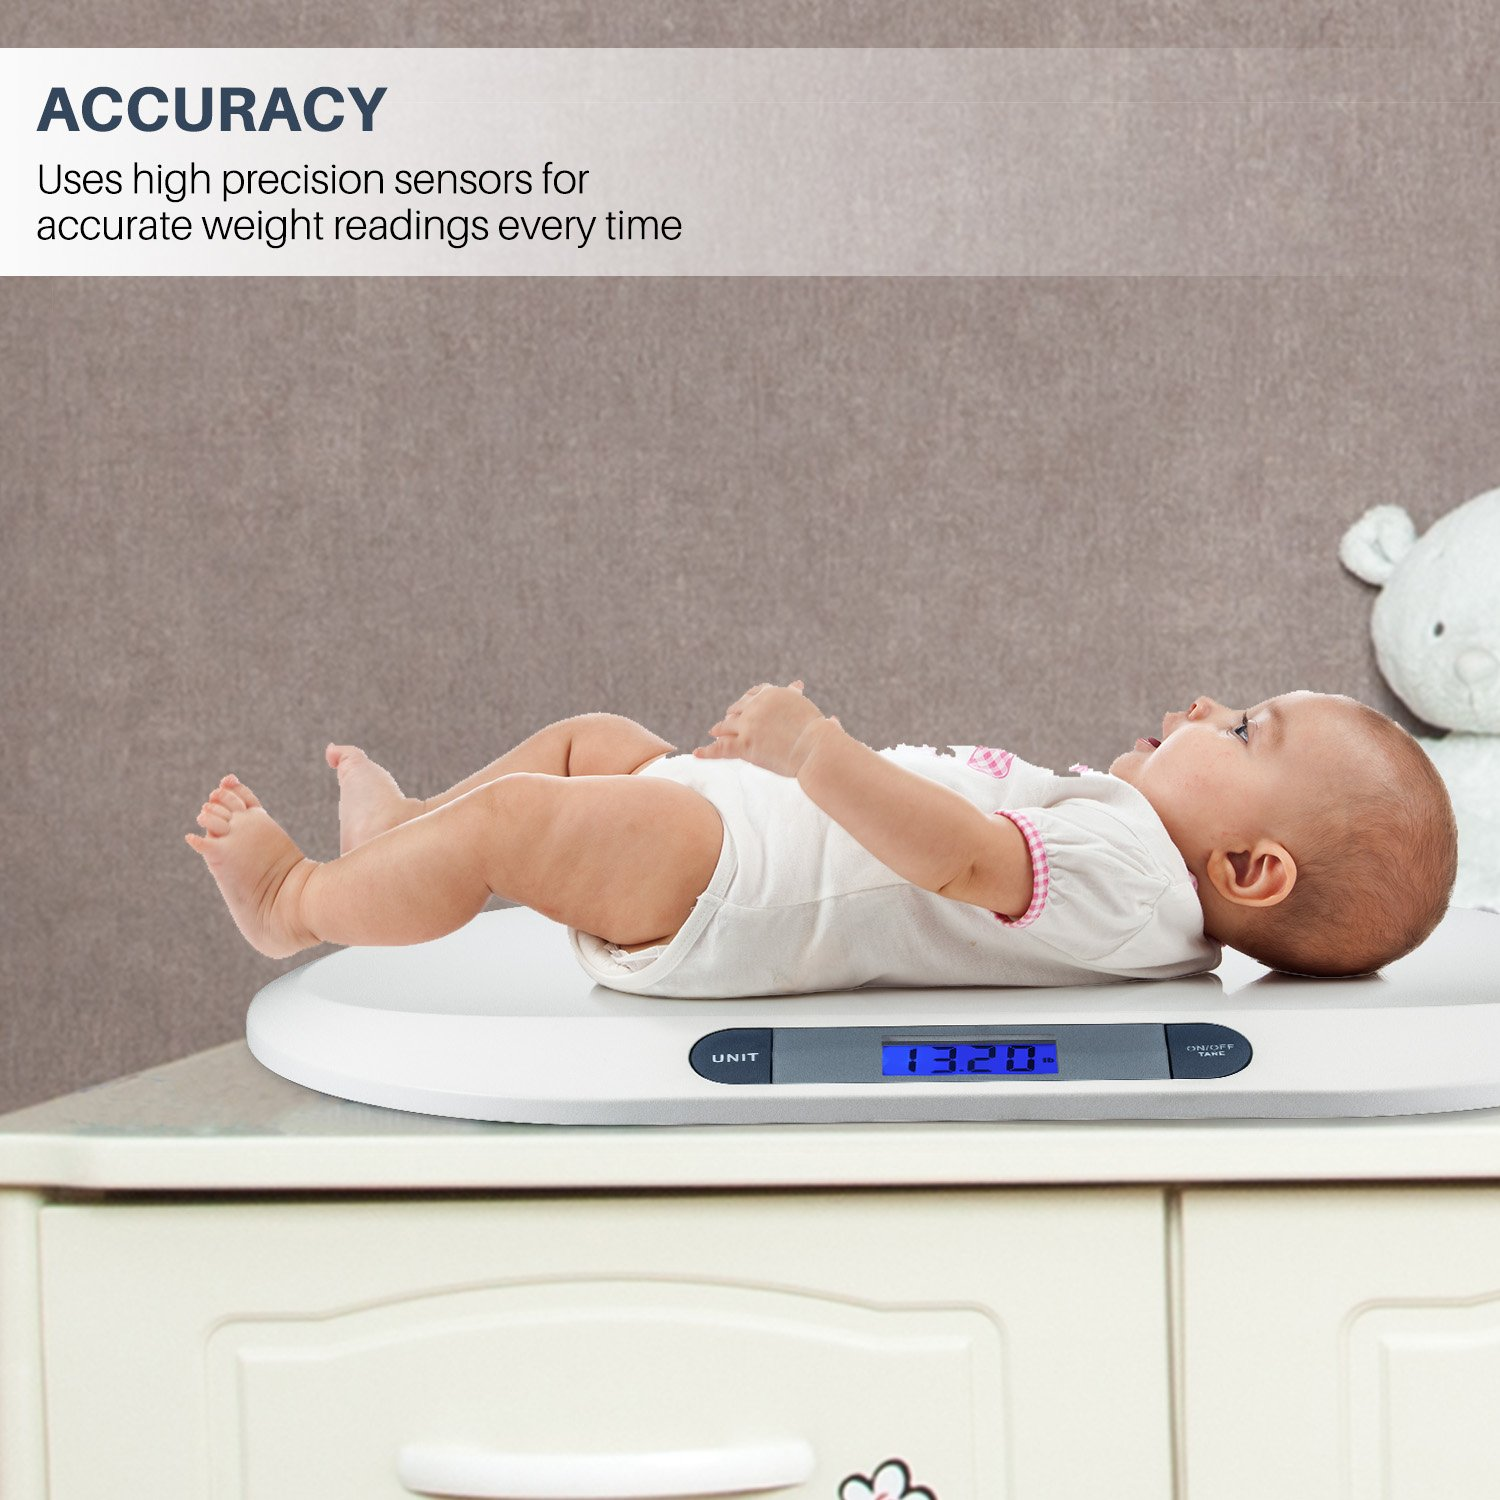 Amazon smart weigh comfort baby scale with 3 weighing modes 44 amazon smart weigh comfort baby scale with 3 weighing modes 44 pound lbs capacity accurate digital scale for infants toddlers and babies baby geenschuldenfo Choice Image